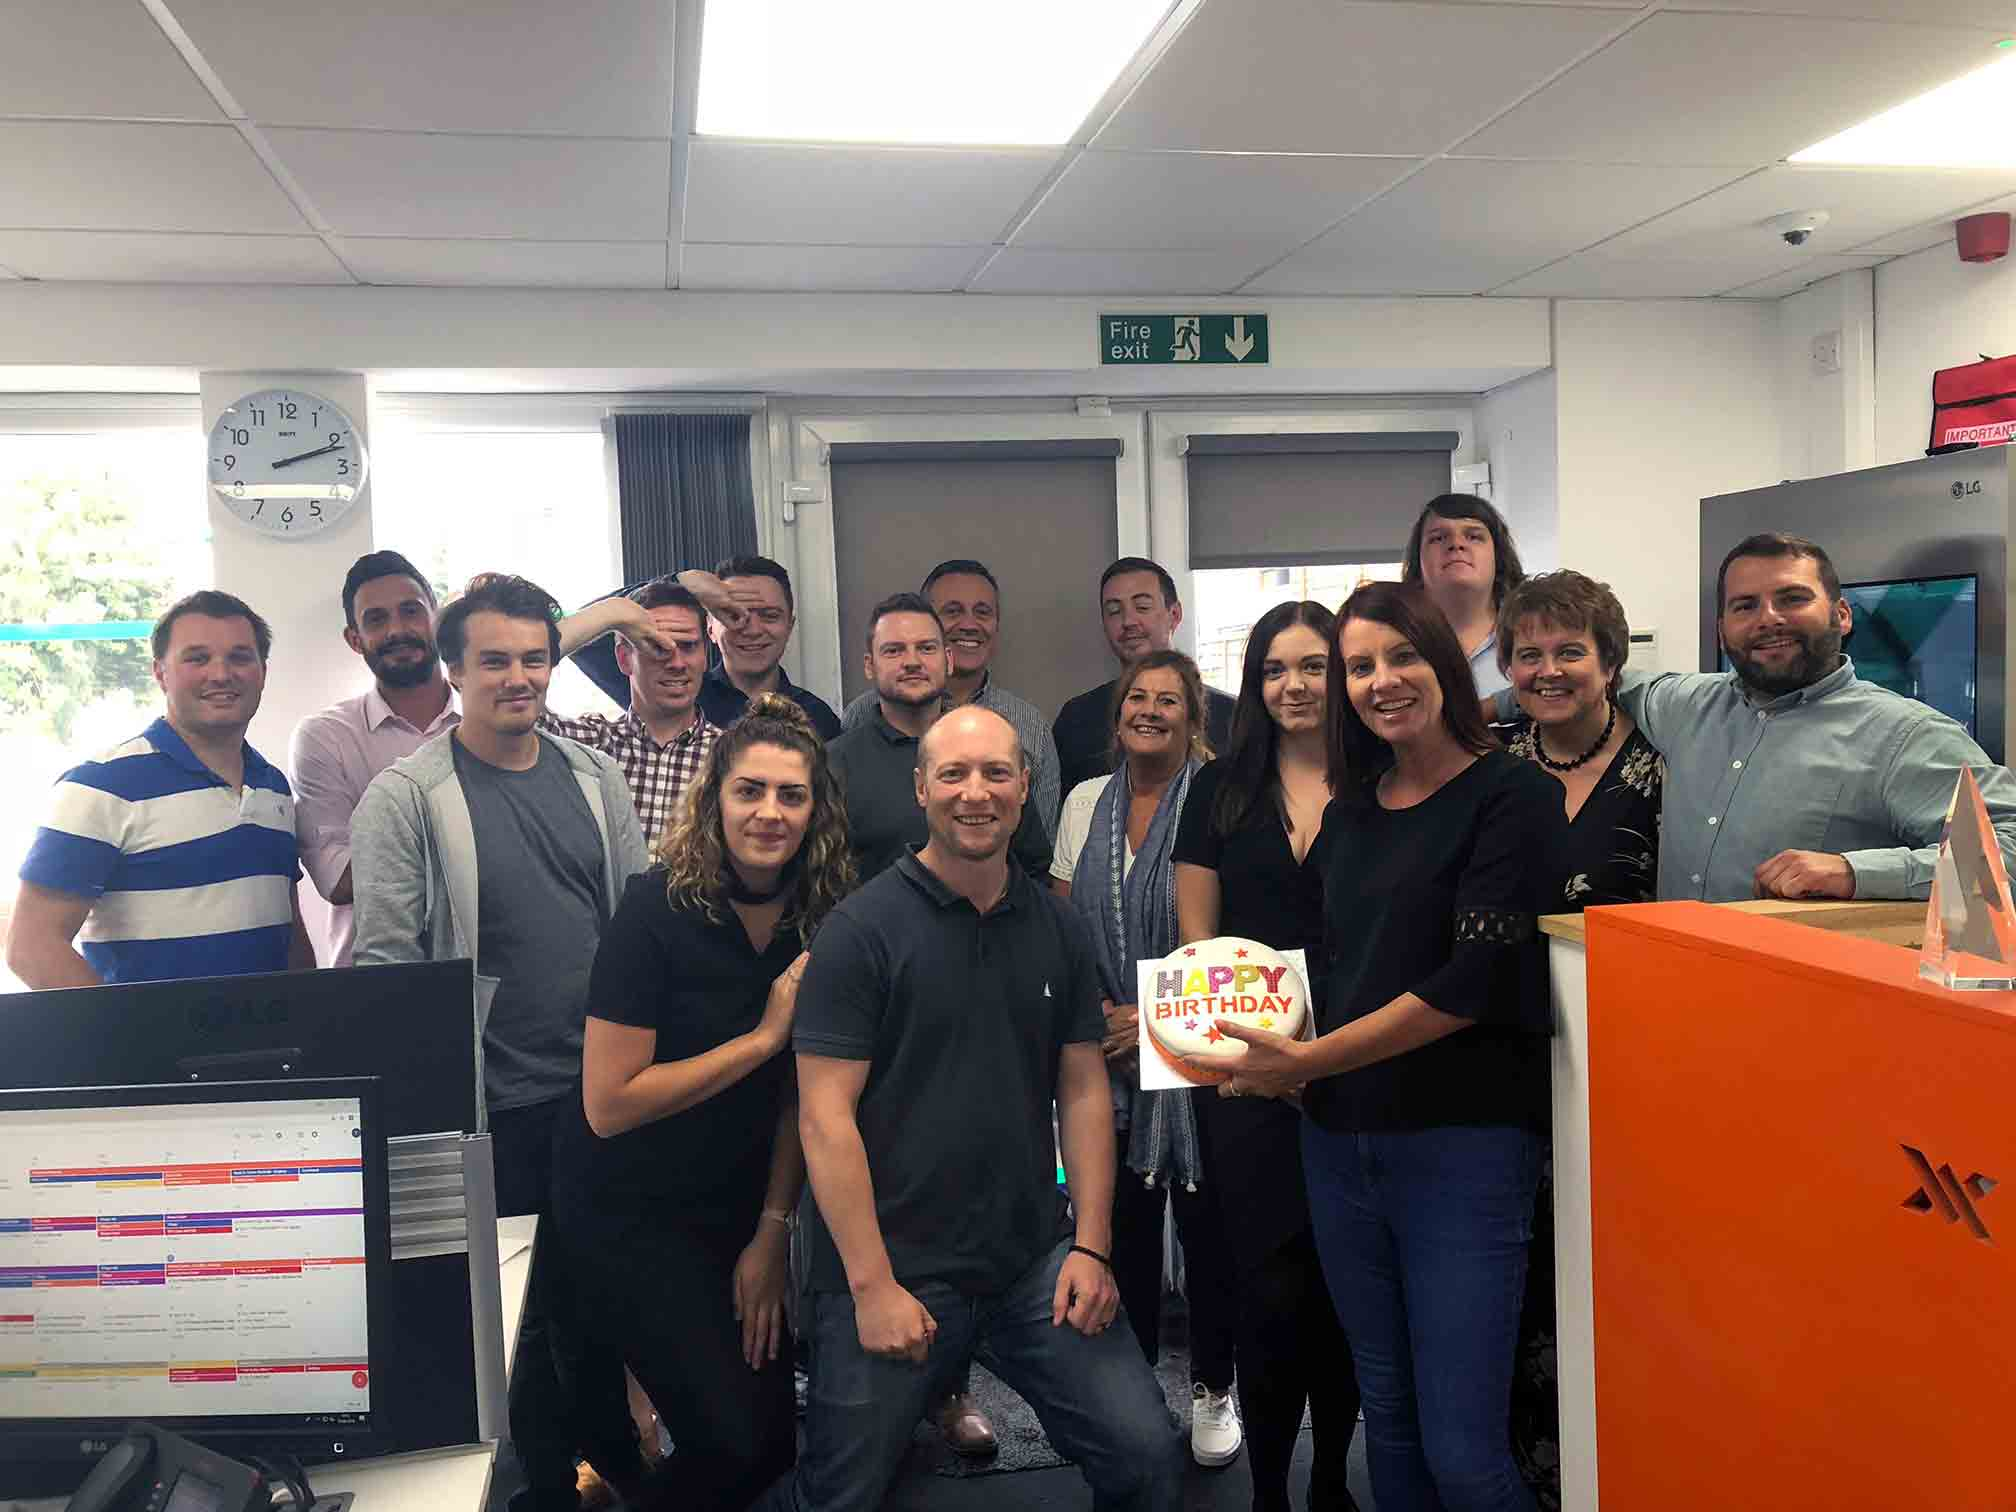 TwistedPair celebrate 14th birthday!